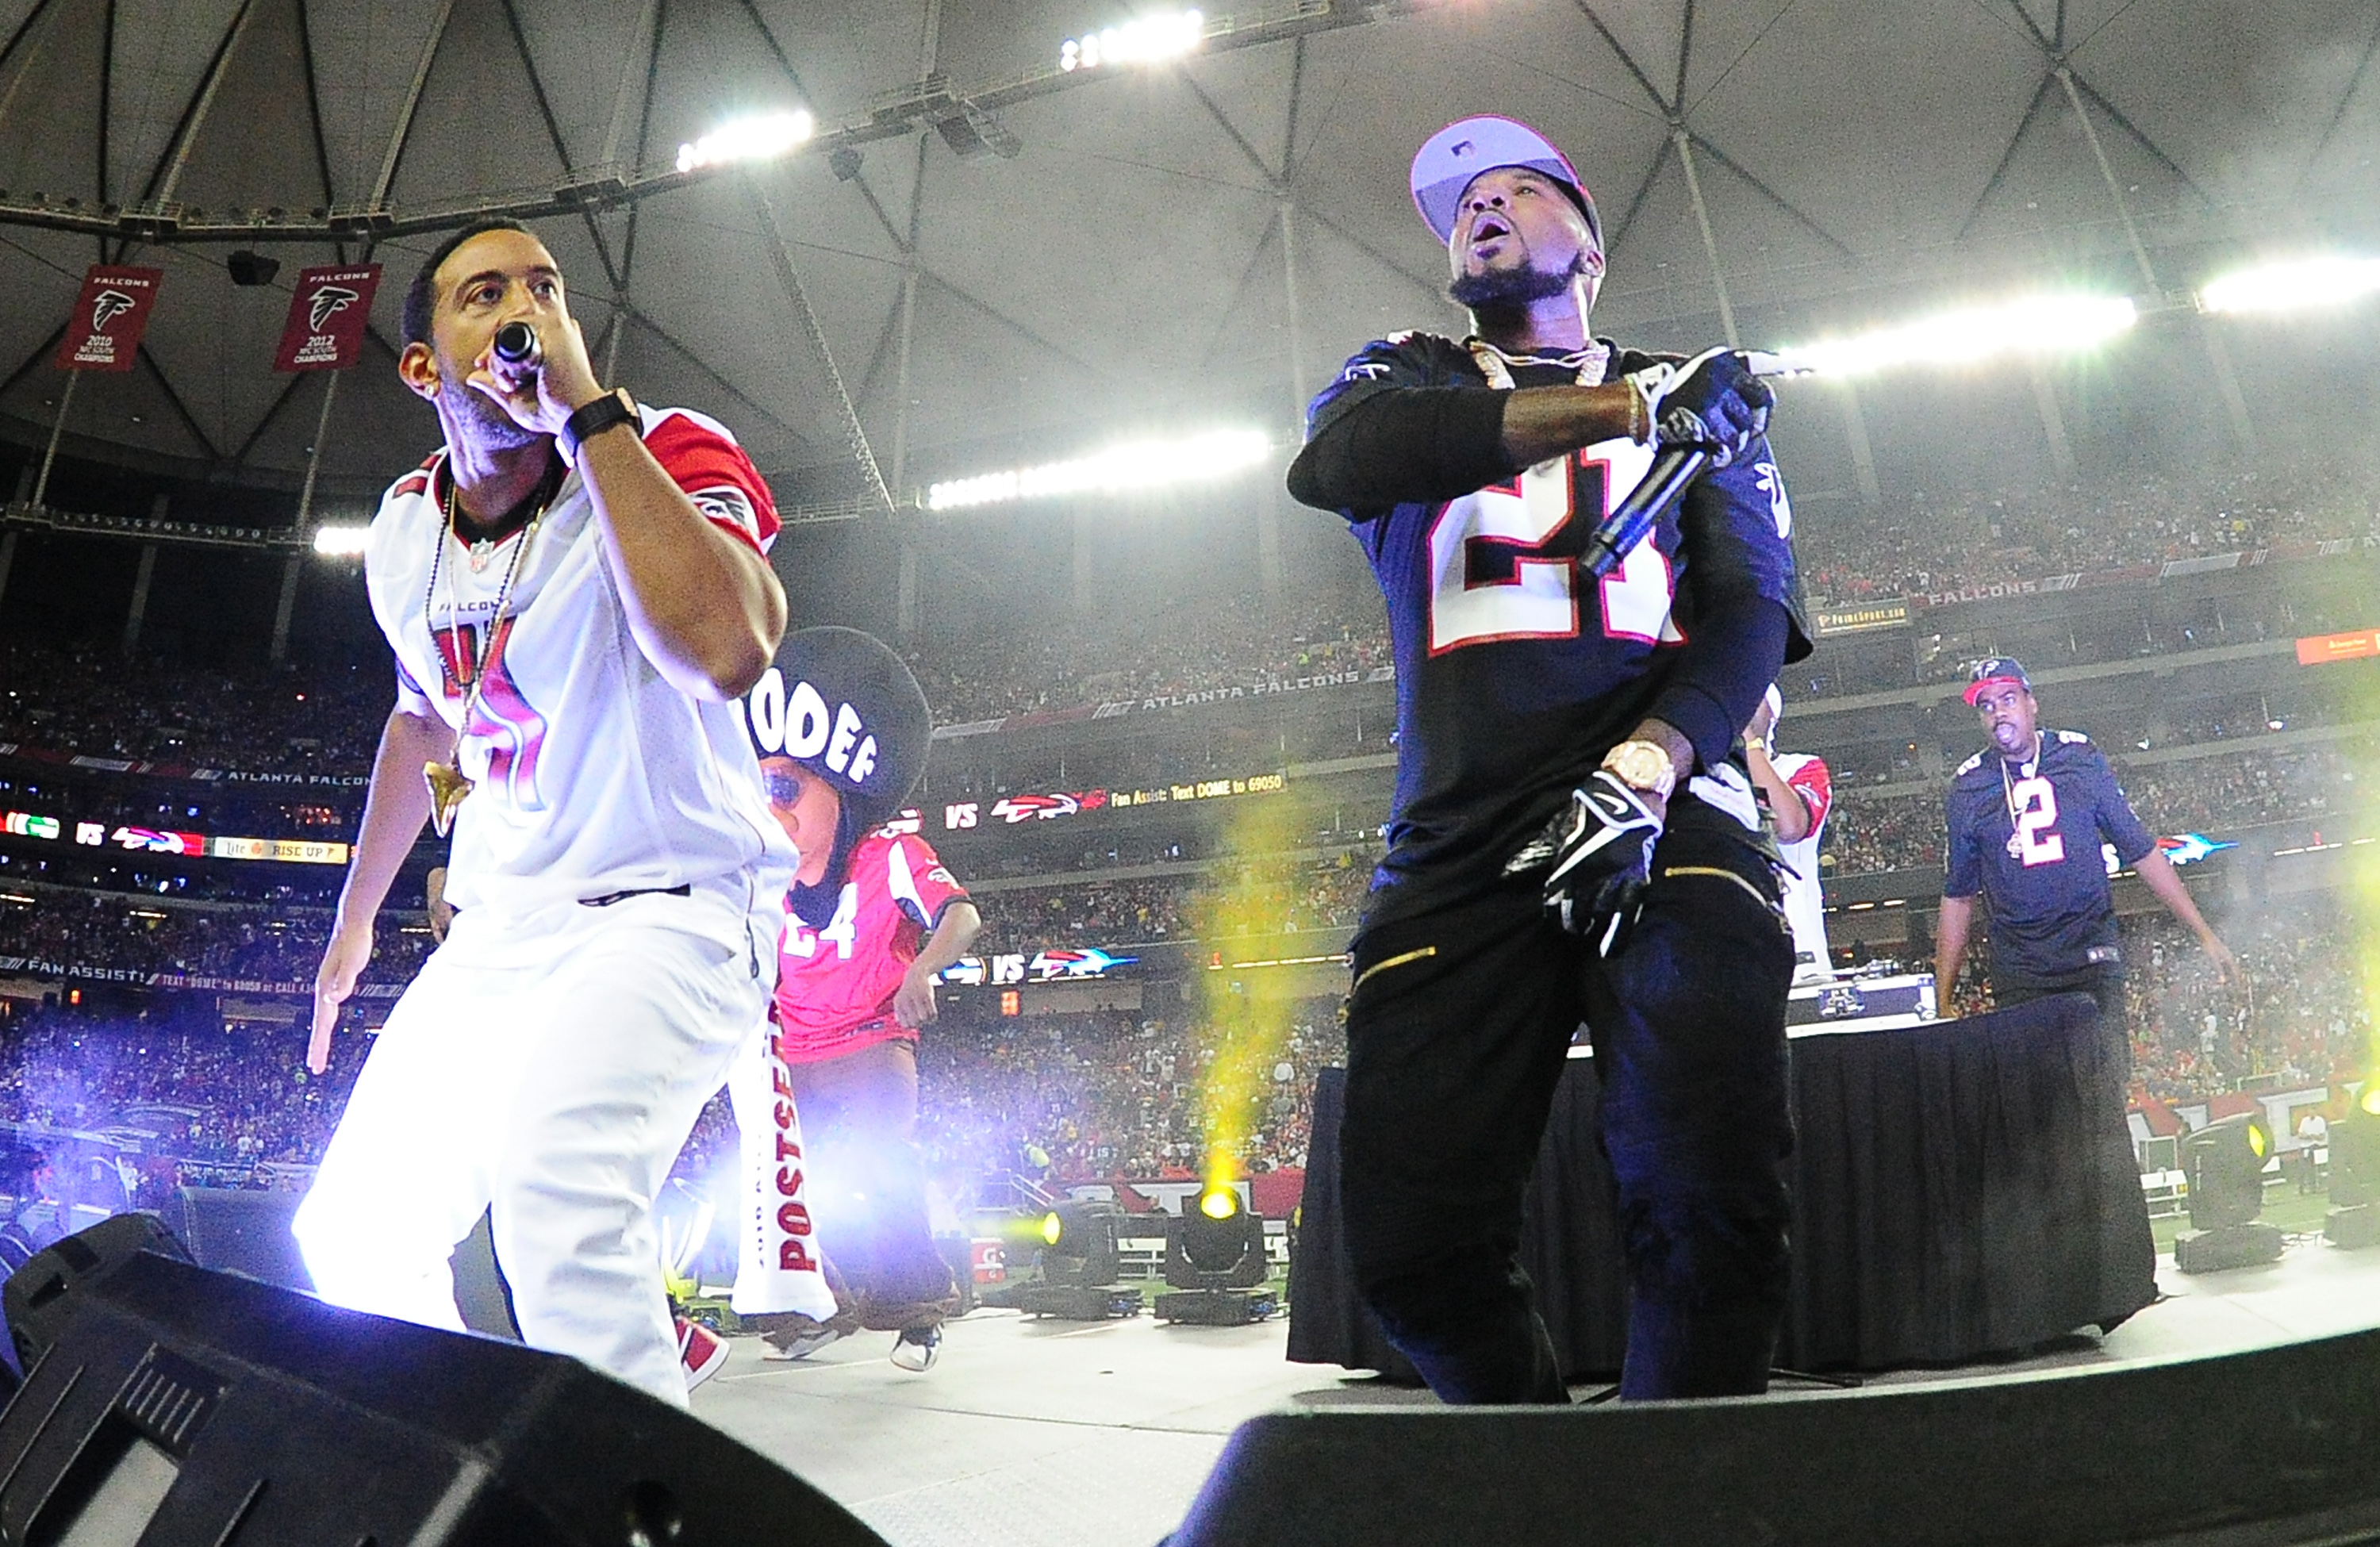 Atlanta already annihilated New England in the Super Bowl of music